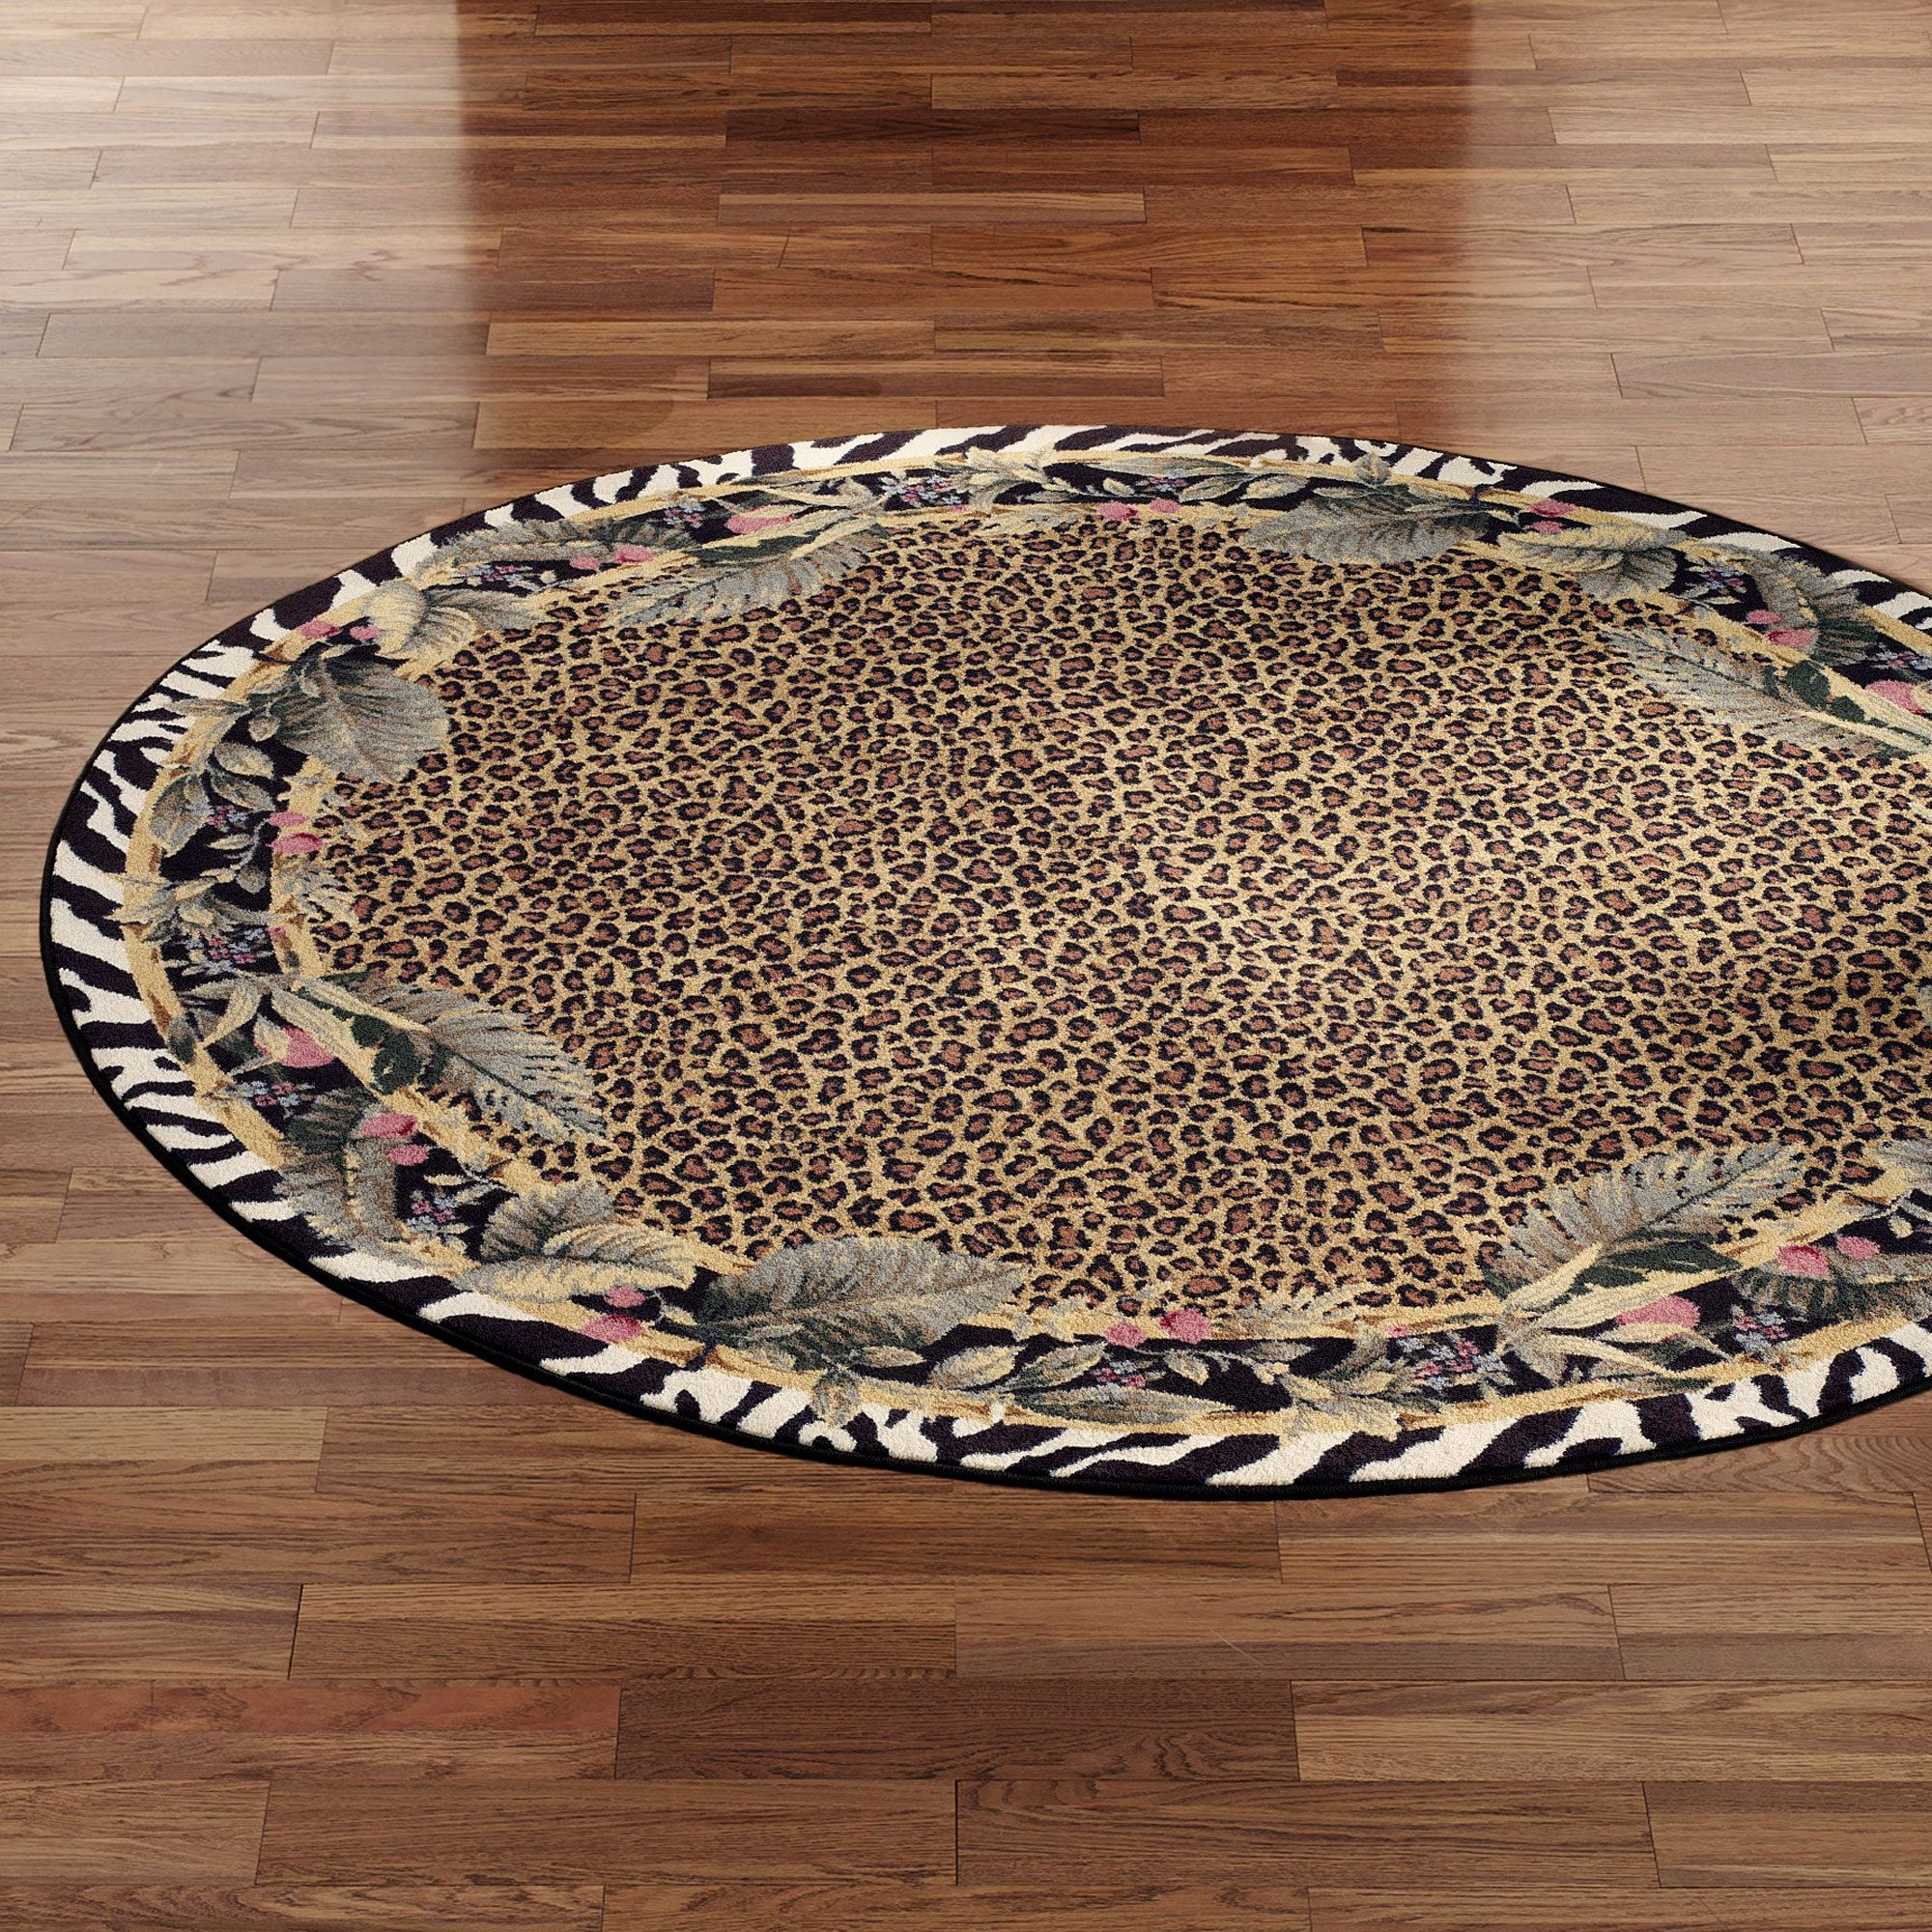 Jungle safari round rug 77